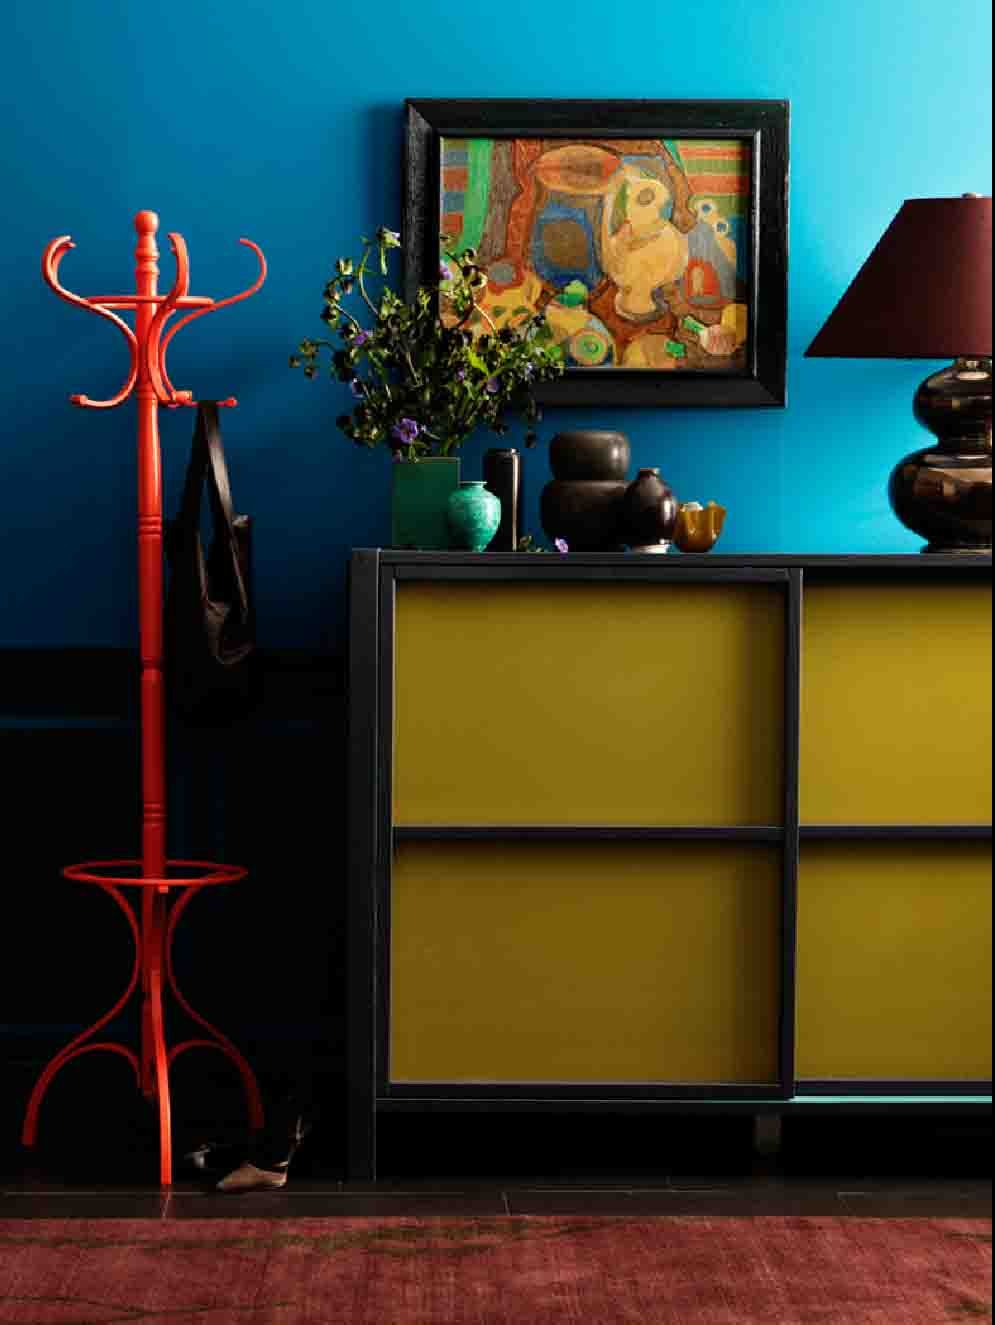 blue.yellow.red! | Spaces | Pinterest | Interiors, Yellow and Colors